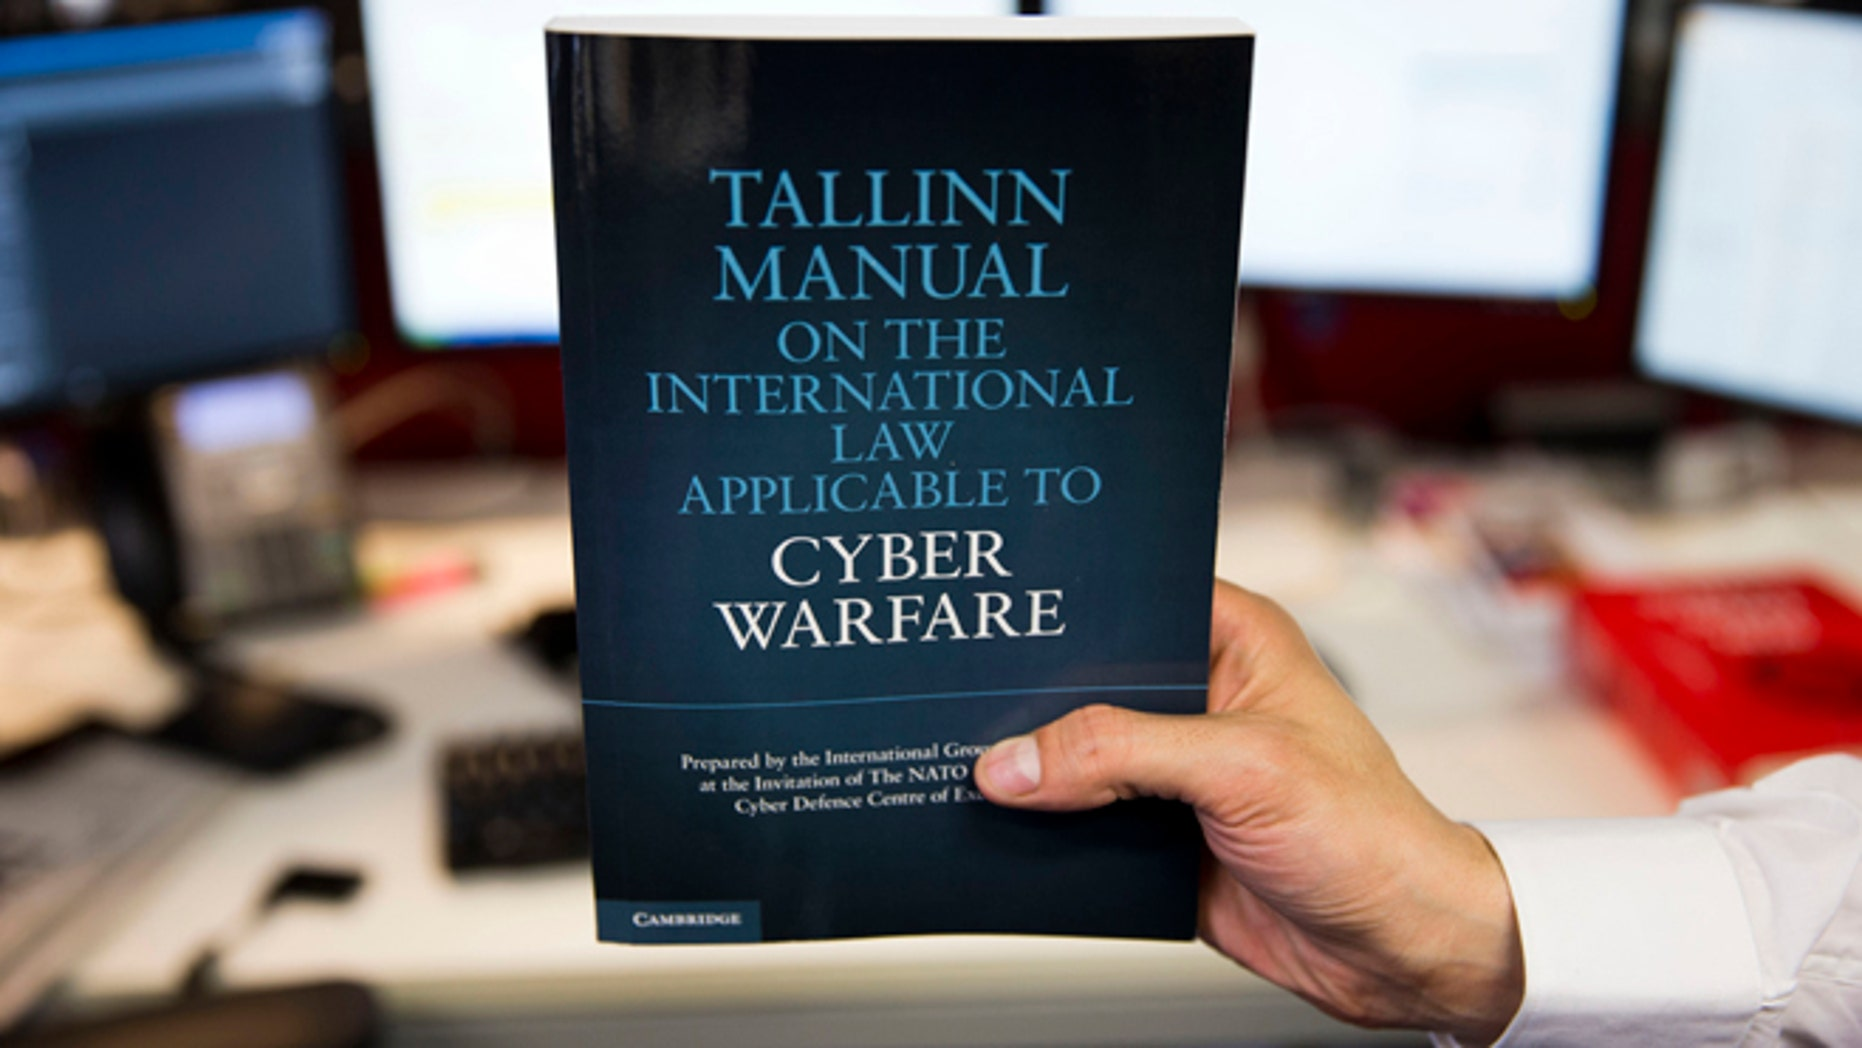 March 19, 2013: Even cyberwar has rules, and one group of experts is publishing a manual to prove it. The handbook due to be published later this week applies the venerable practice of international law to the world of electronic warfare.